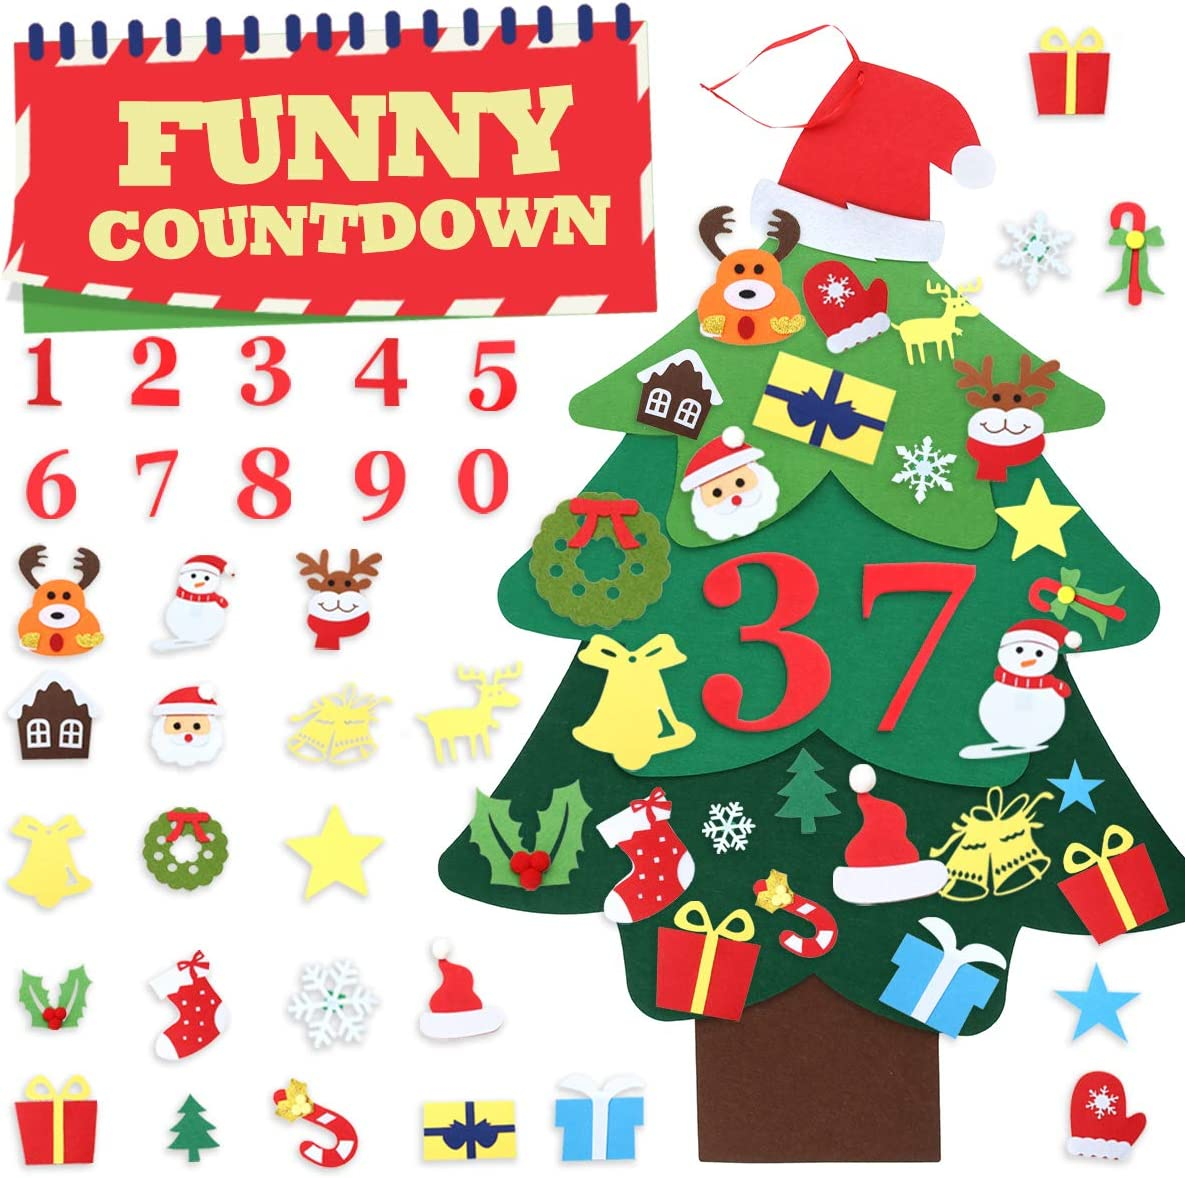 Jeteven Felt Christmas Tree, 3.2FT Christmas DIY Felt Tree for Toddlers with 39pcs Ornaments, Wall Hanging Detachable Xmas Gifts Home Decorations for Kids DIY Door, Office, Classroom